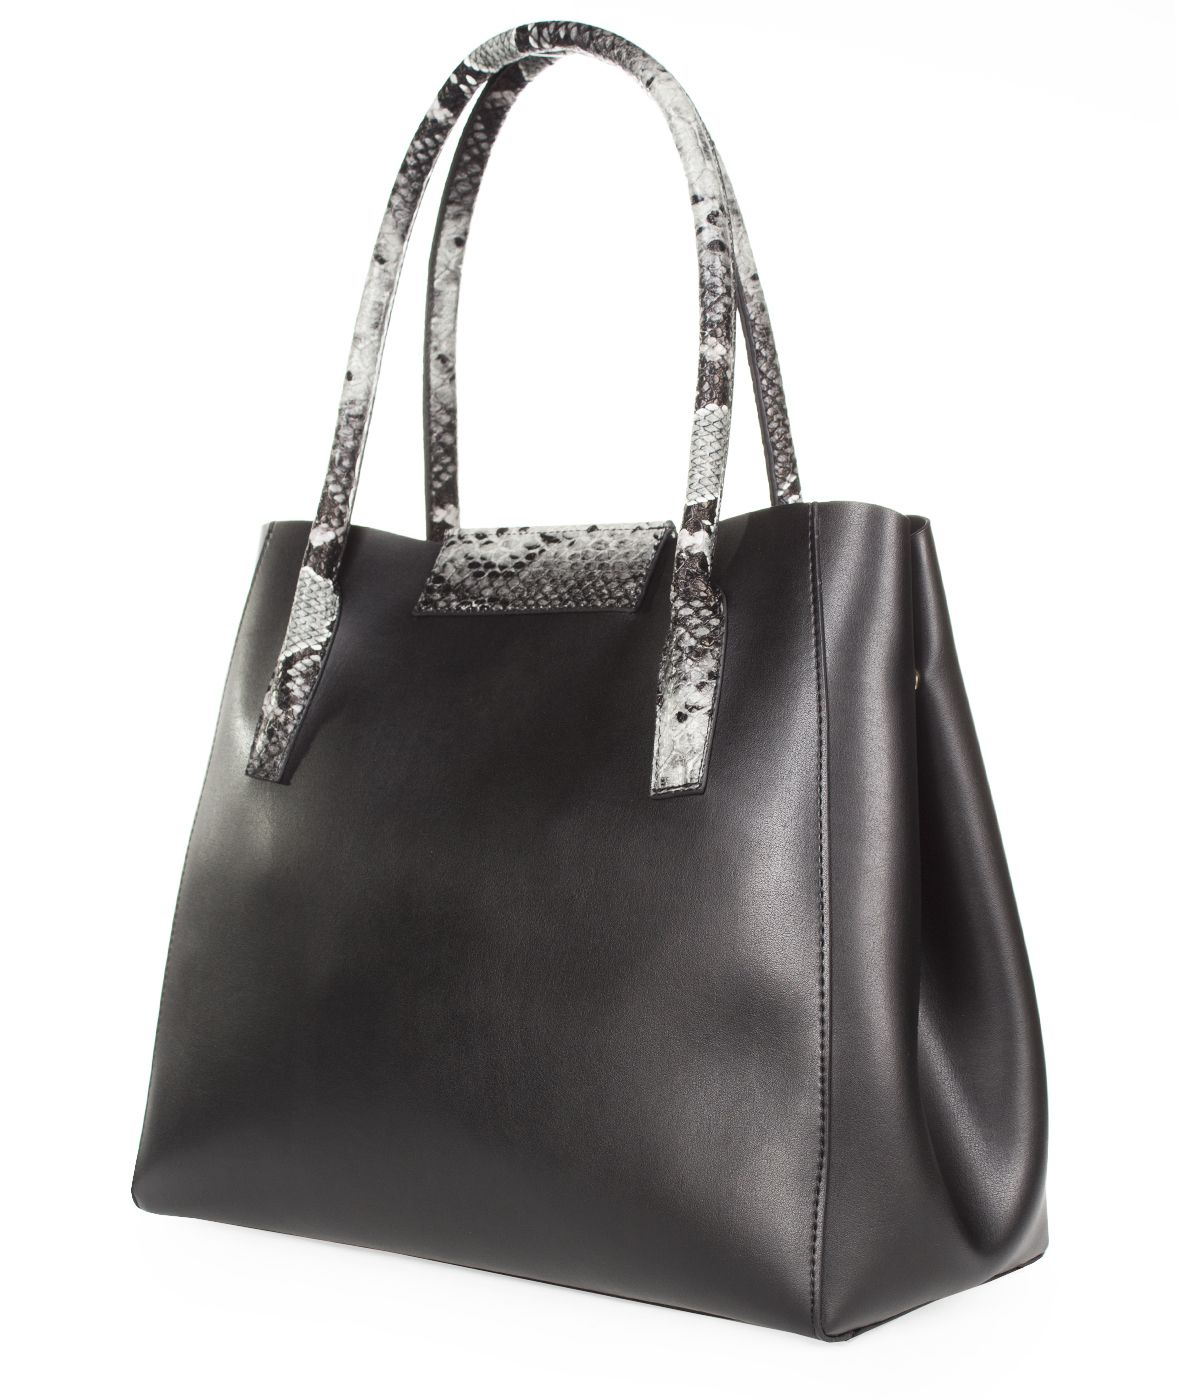 LEATHER BAG WITH SNAKE SKIN IMITATION  1